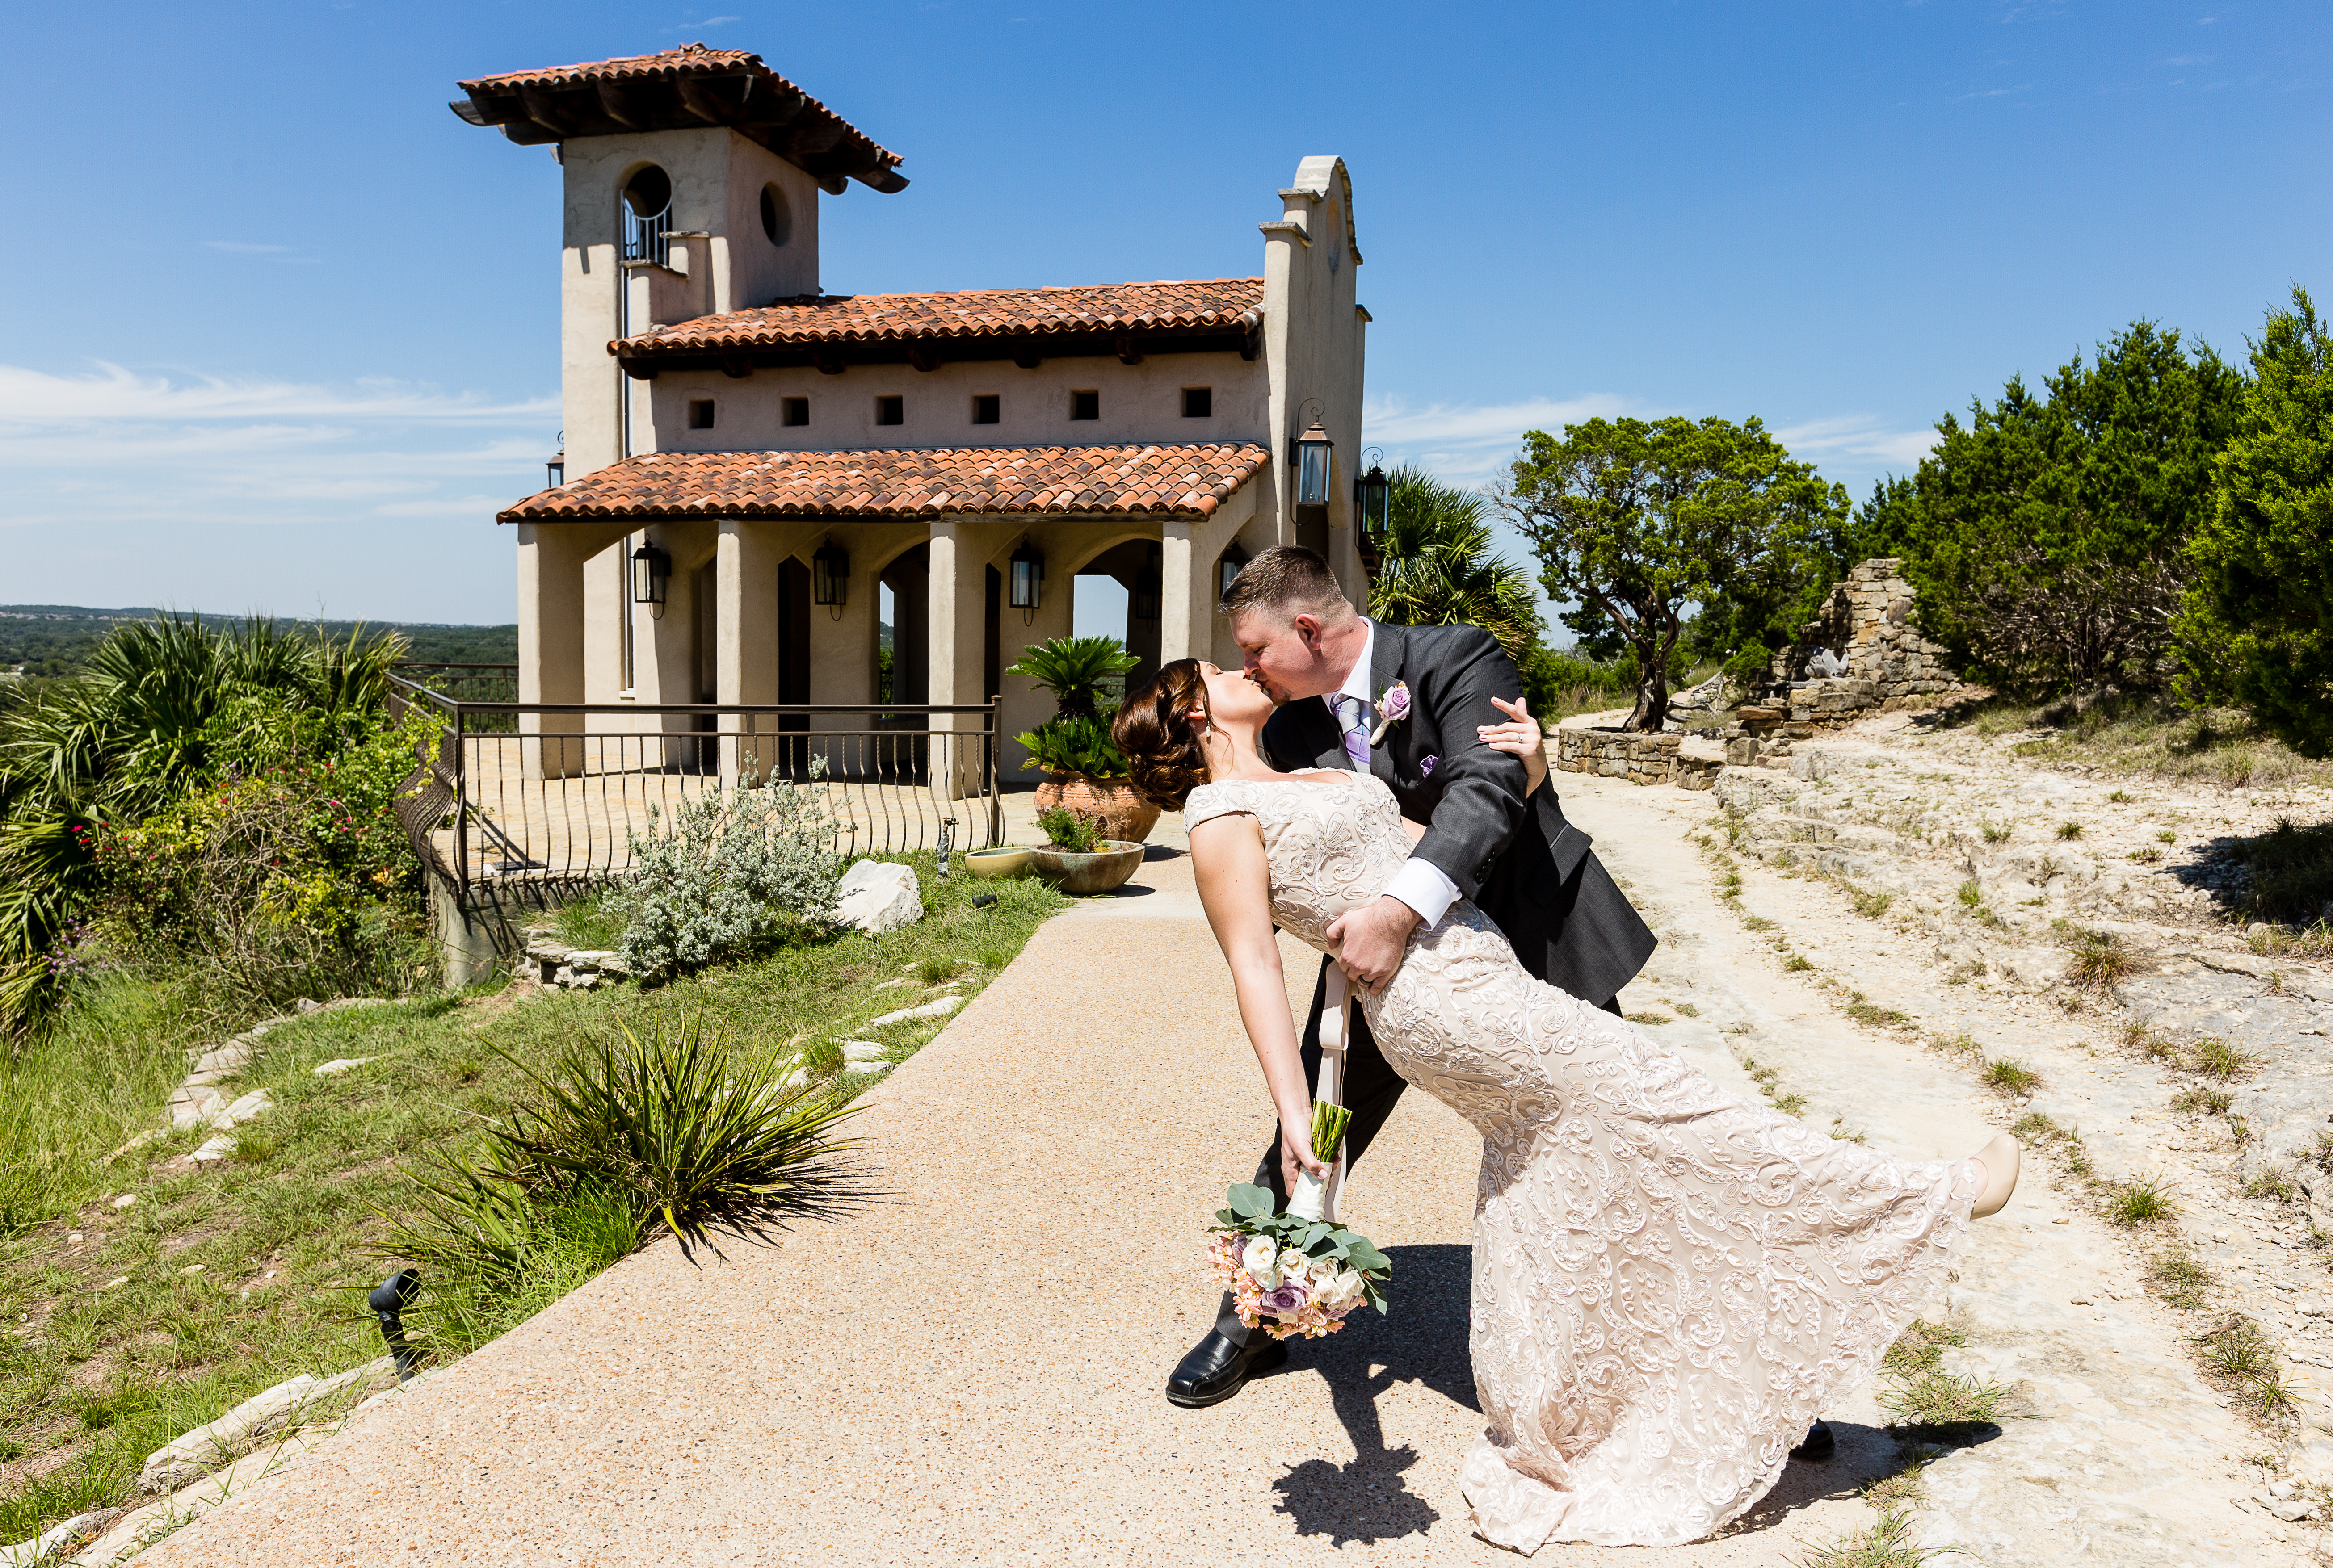 Chapel dulcinea ceremony reception venue known as the free wedding chapel chapel dulcinea in south austin sits on a cliff overlooking austins hill country at wizard academy junglespirit Image collections